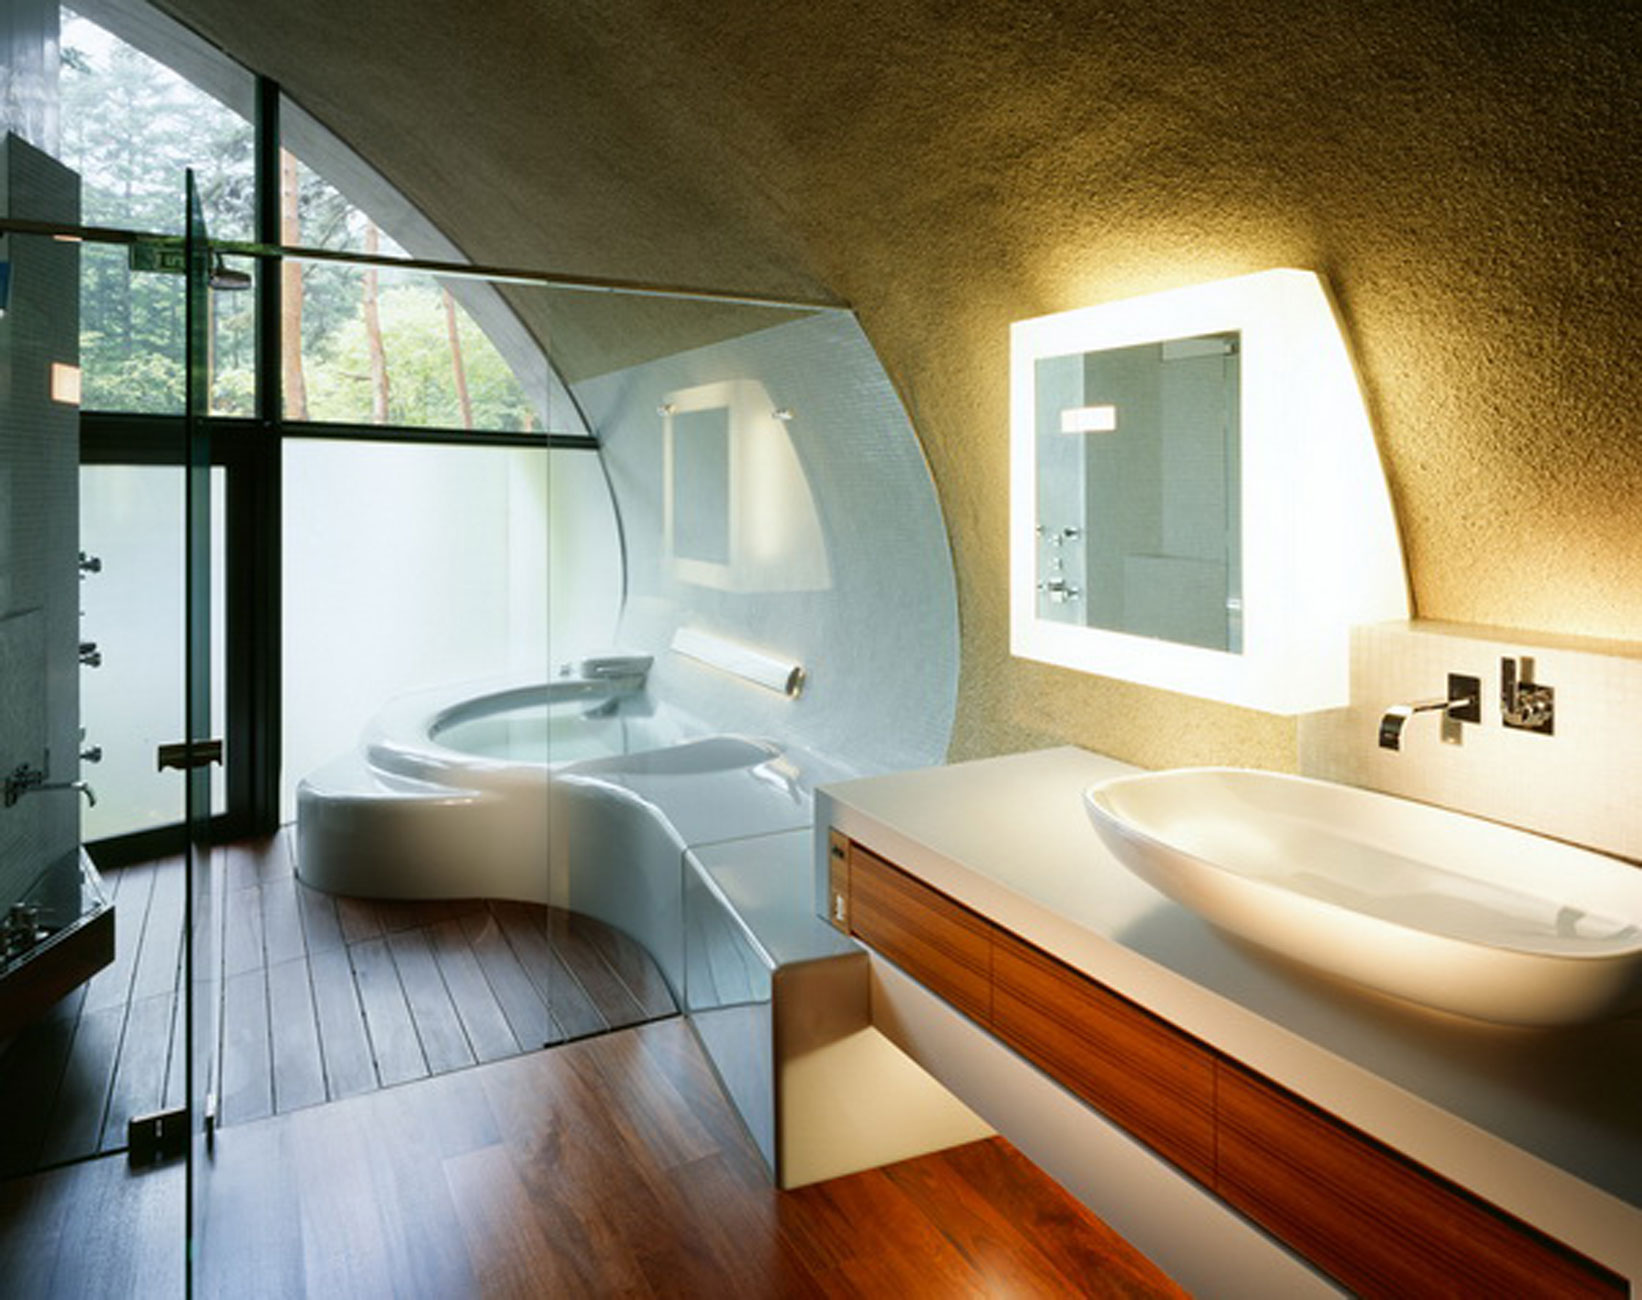 Let your body trapped in serenity in japanese bathroom for Villa de luxe moderne interieur